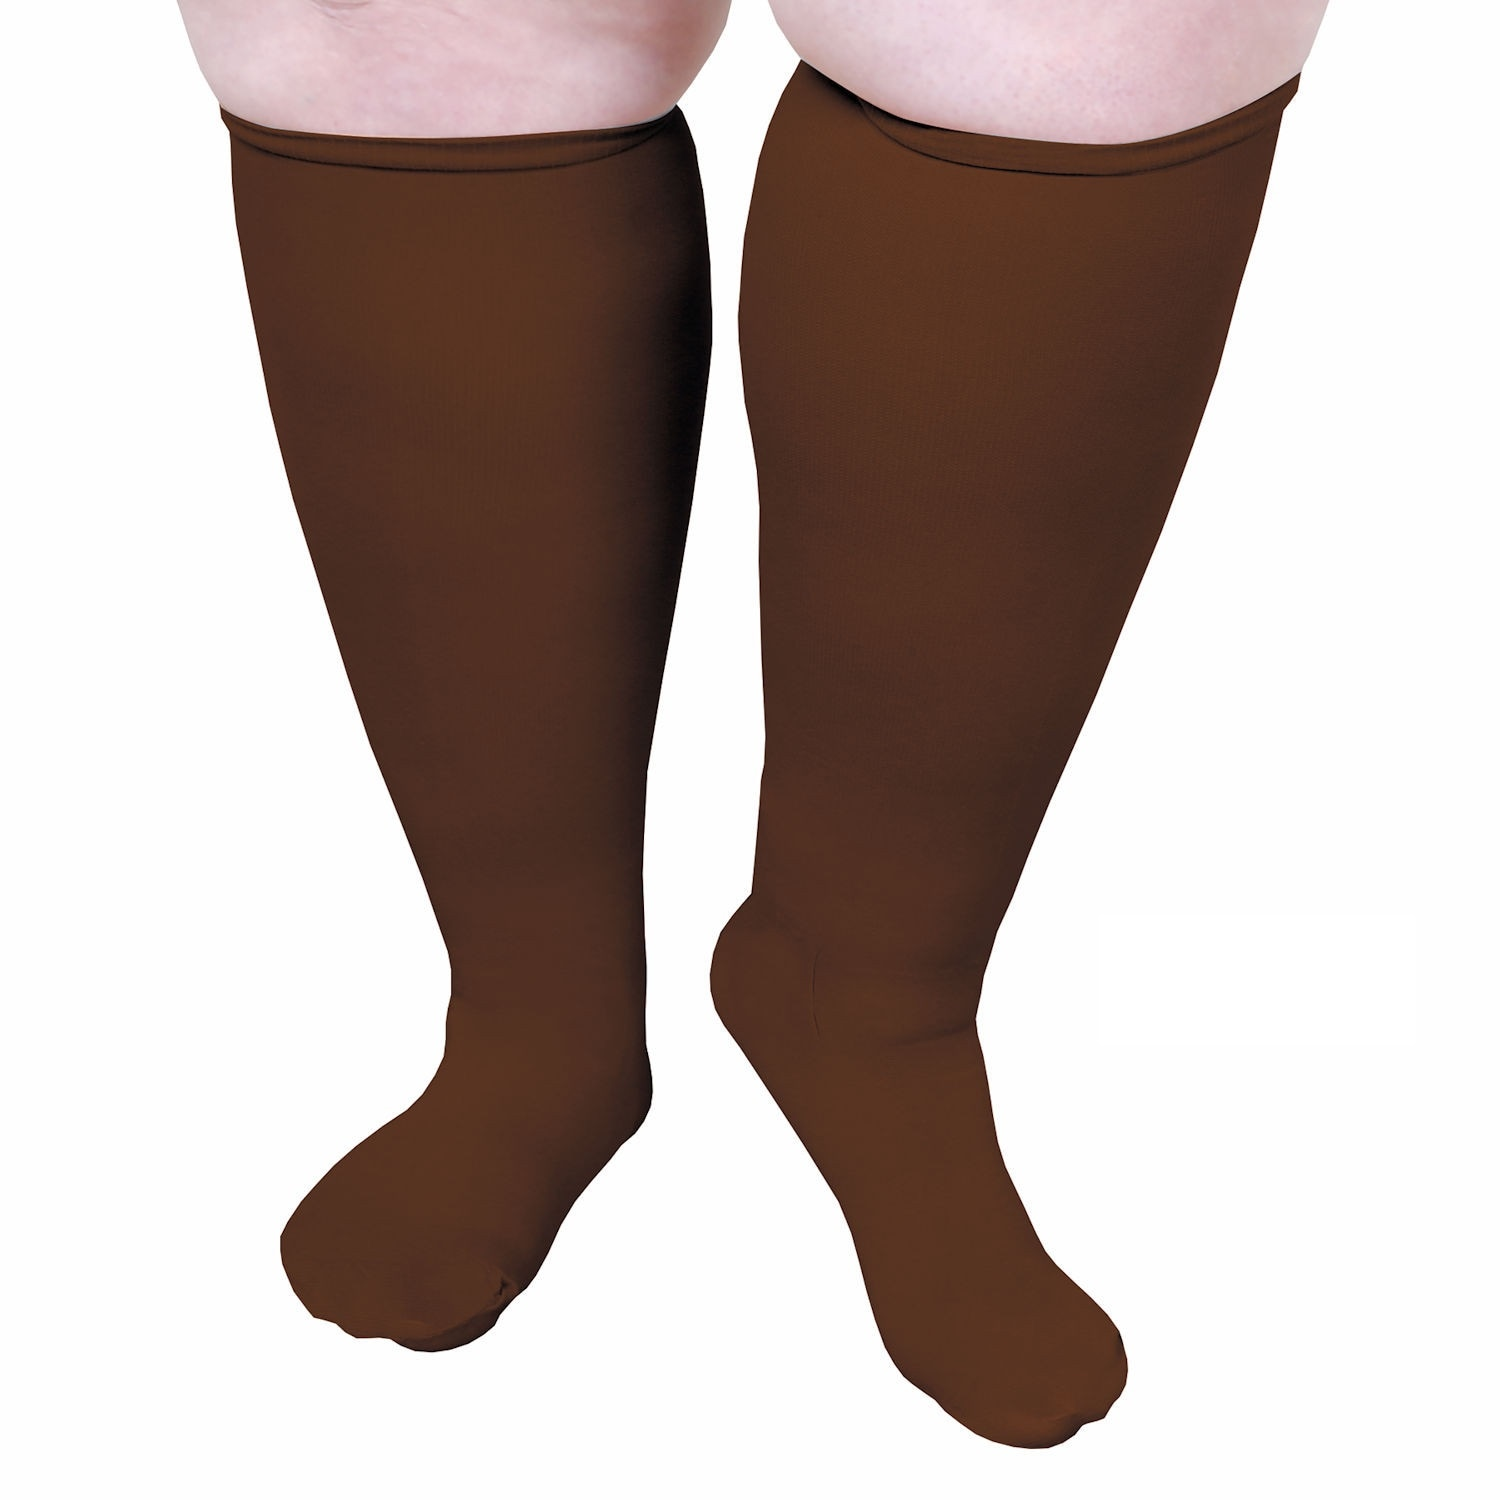 Unisex-Extra-Wide-Moderate-Compression-Knee-High-Socks-Up-to-XW-4E-amp-26-034-Calf thumbnail 9